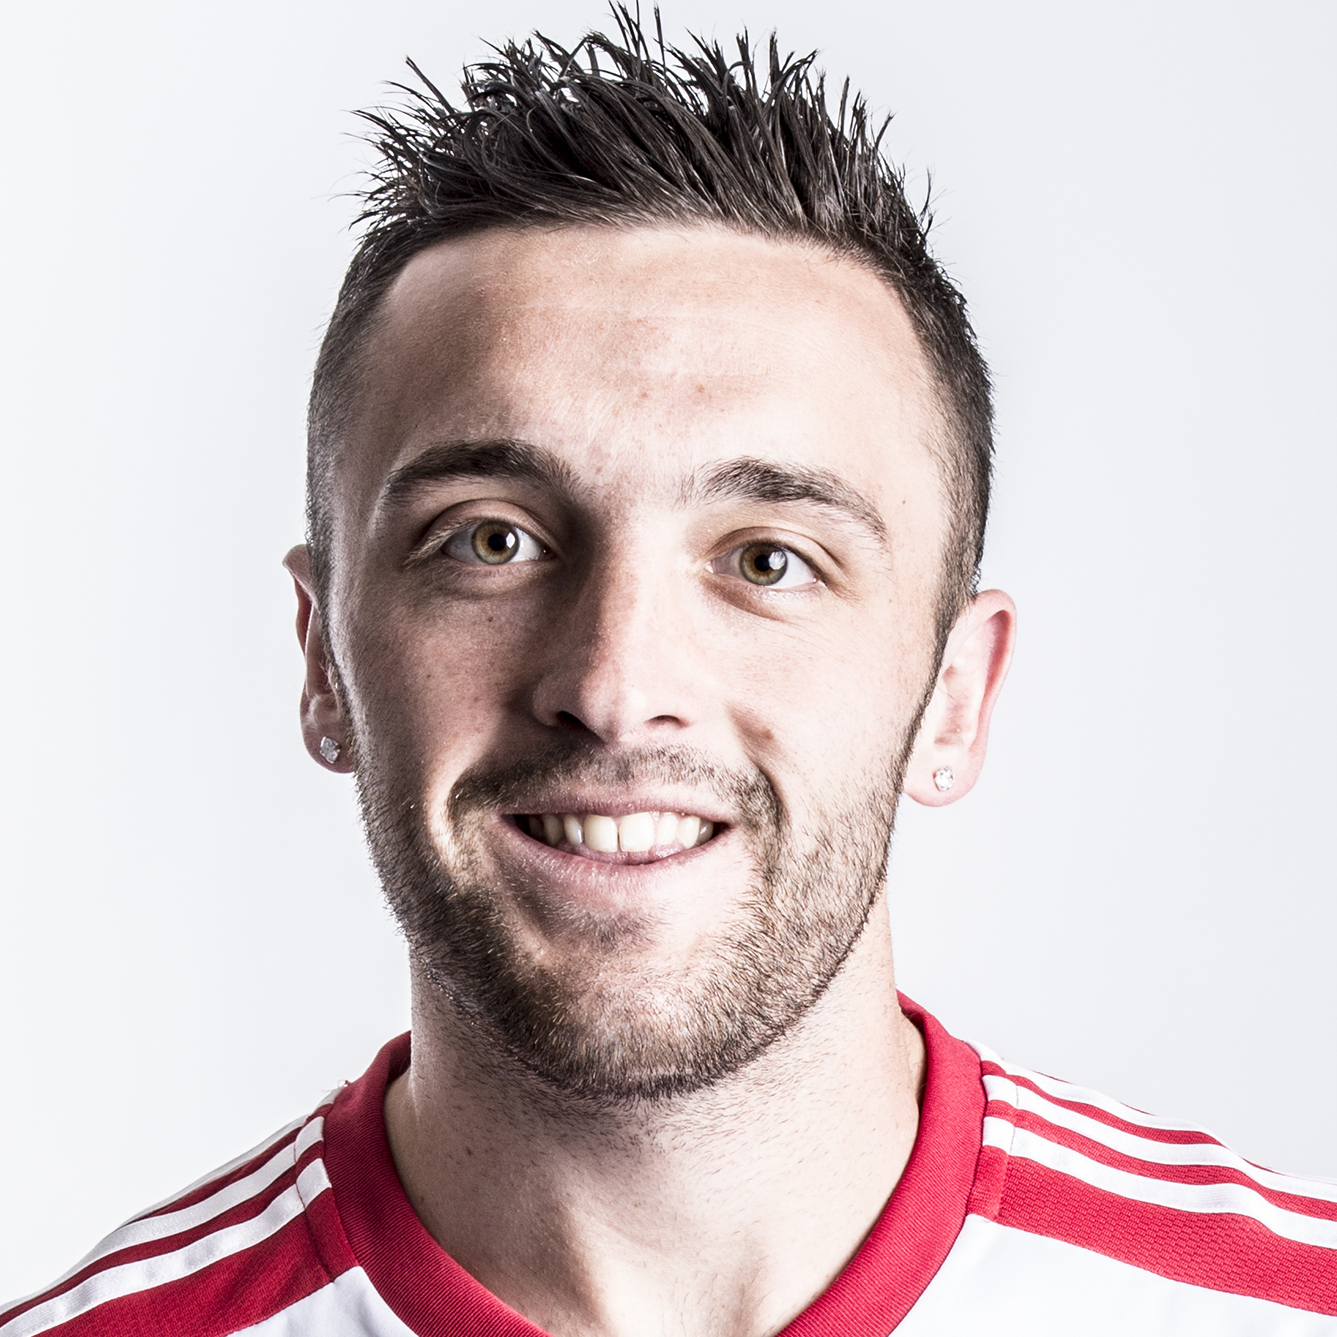 New York's Brandon Allen leads the Eastern Conference with 3 goals